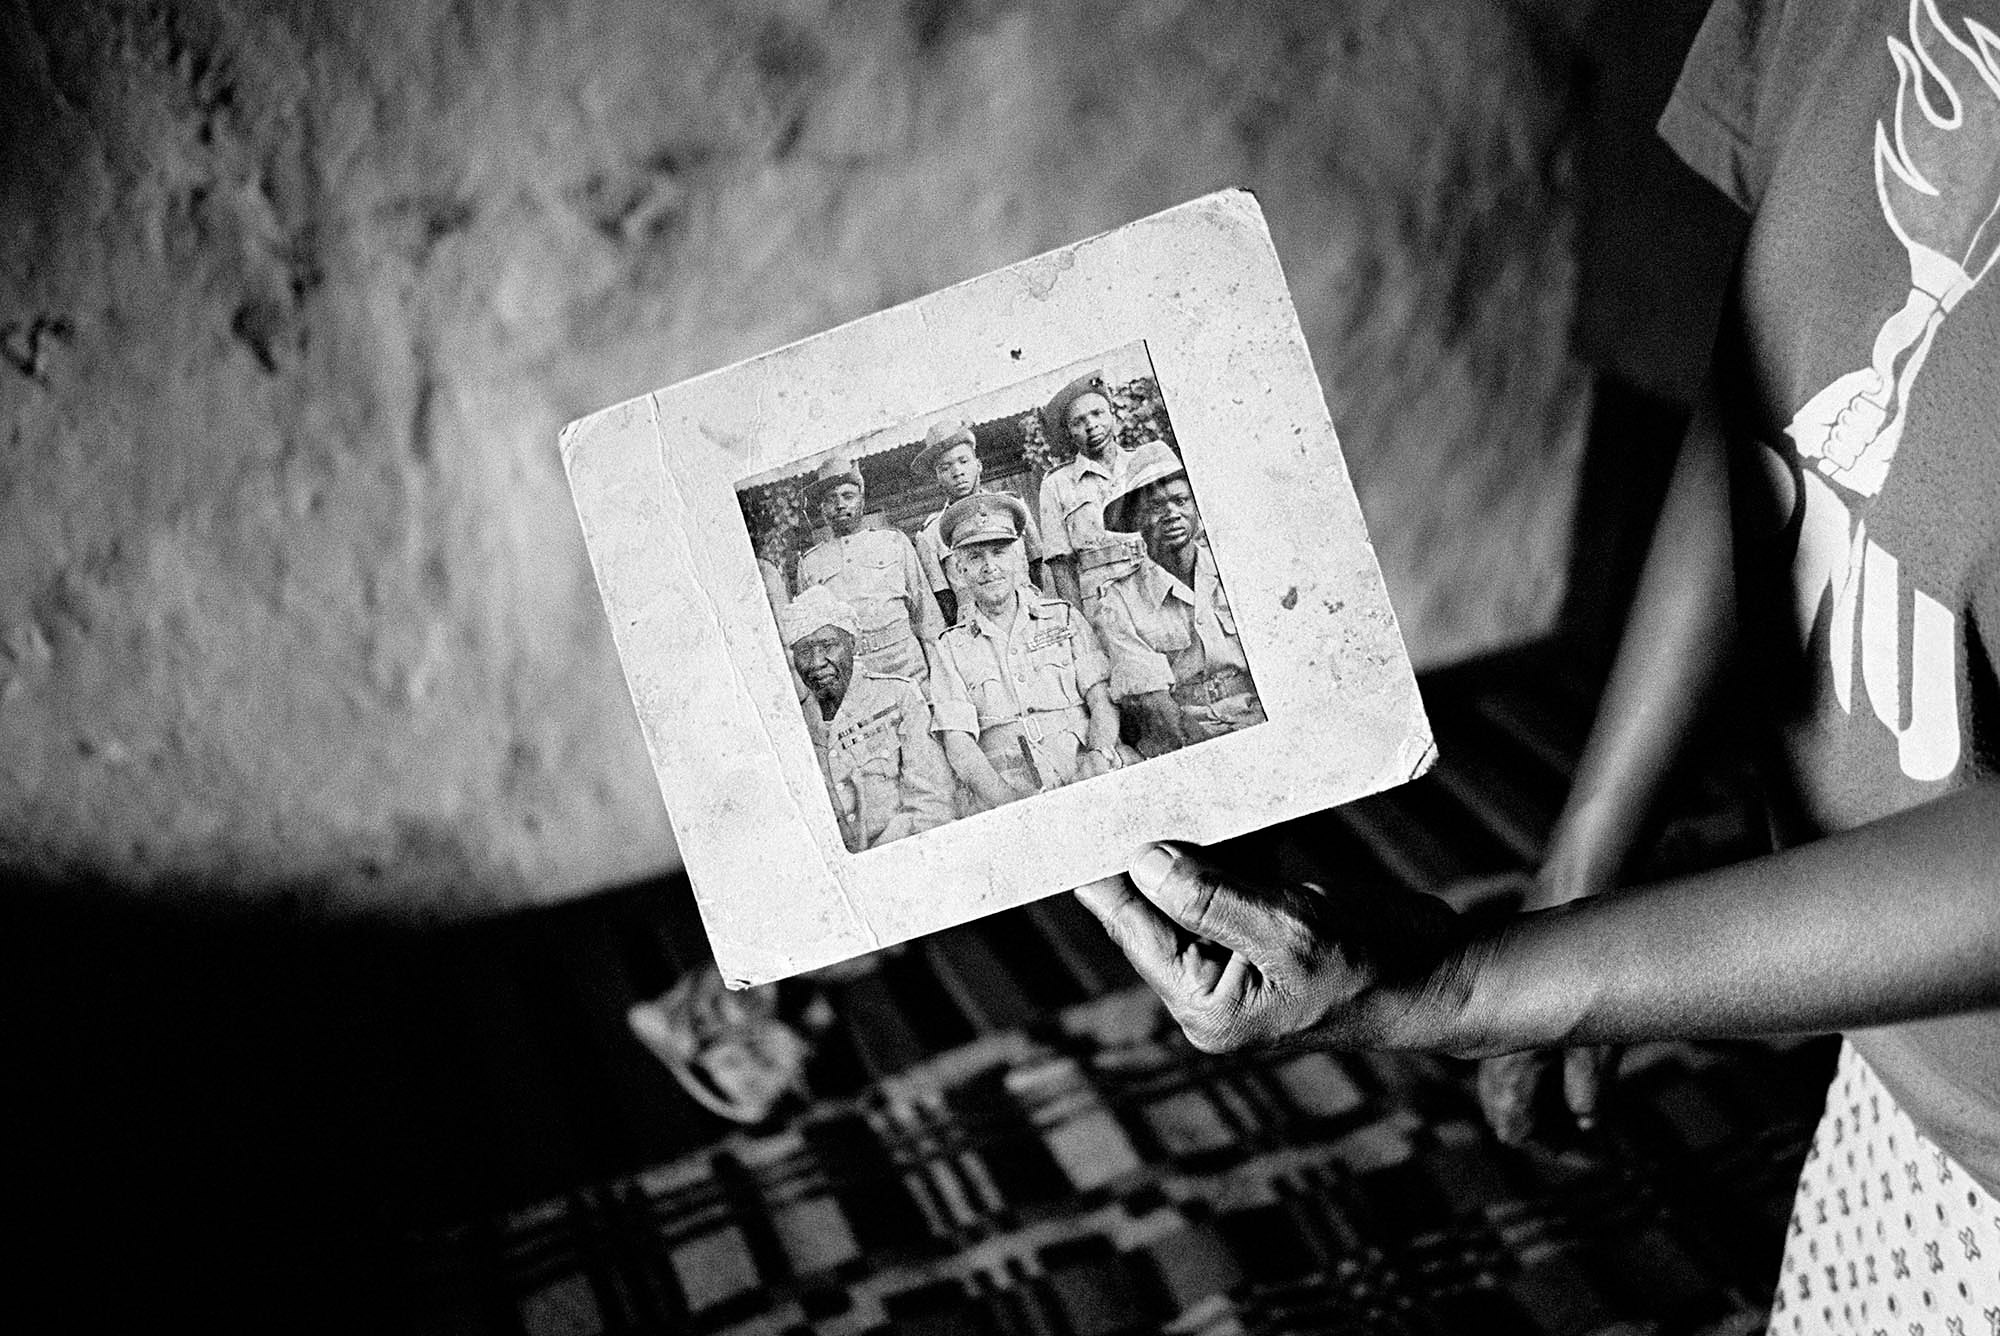 For nearly 50 years following Kenya's independence in 1962, the Nubian community were not formally recognized as a tribe of Kenya and were historically denied recognition. A Nubian woman holds a photograph of her grandfather as an officer in the King's African Rifles.